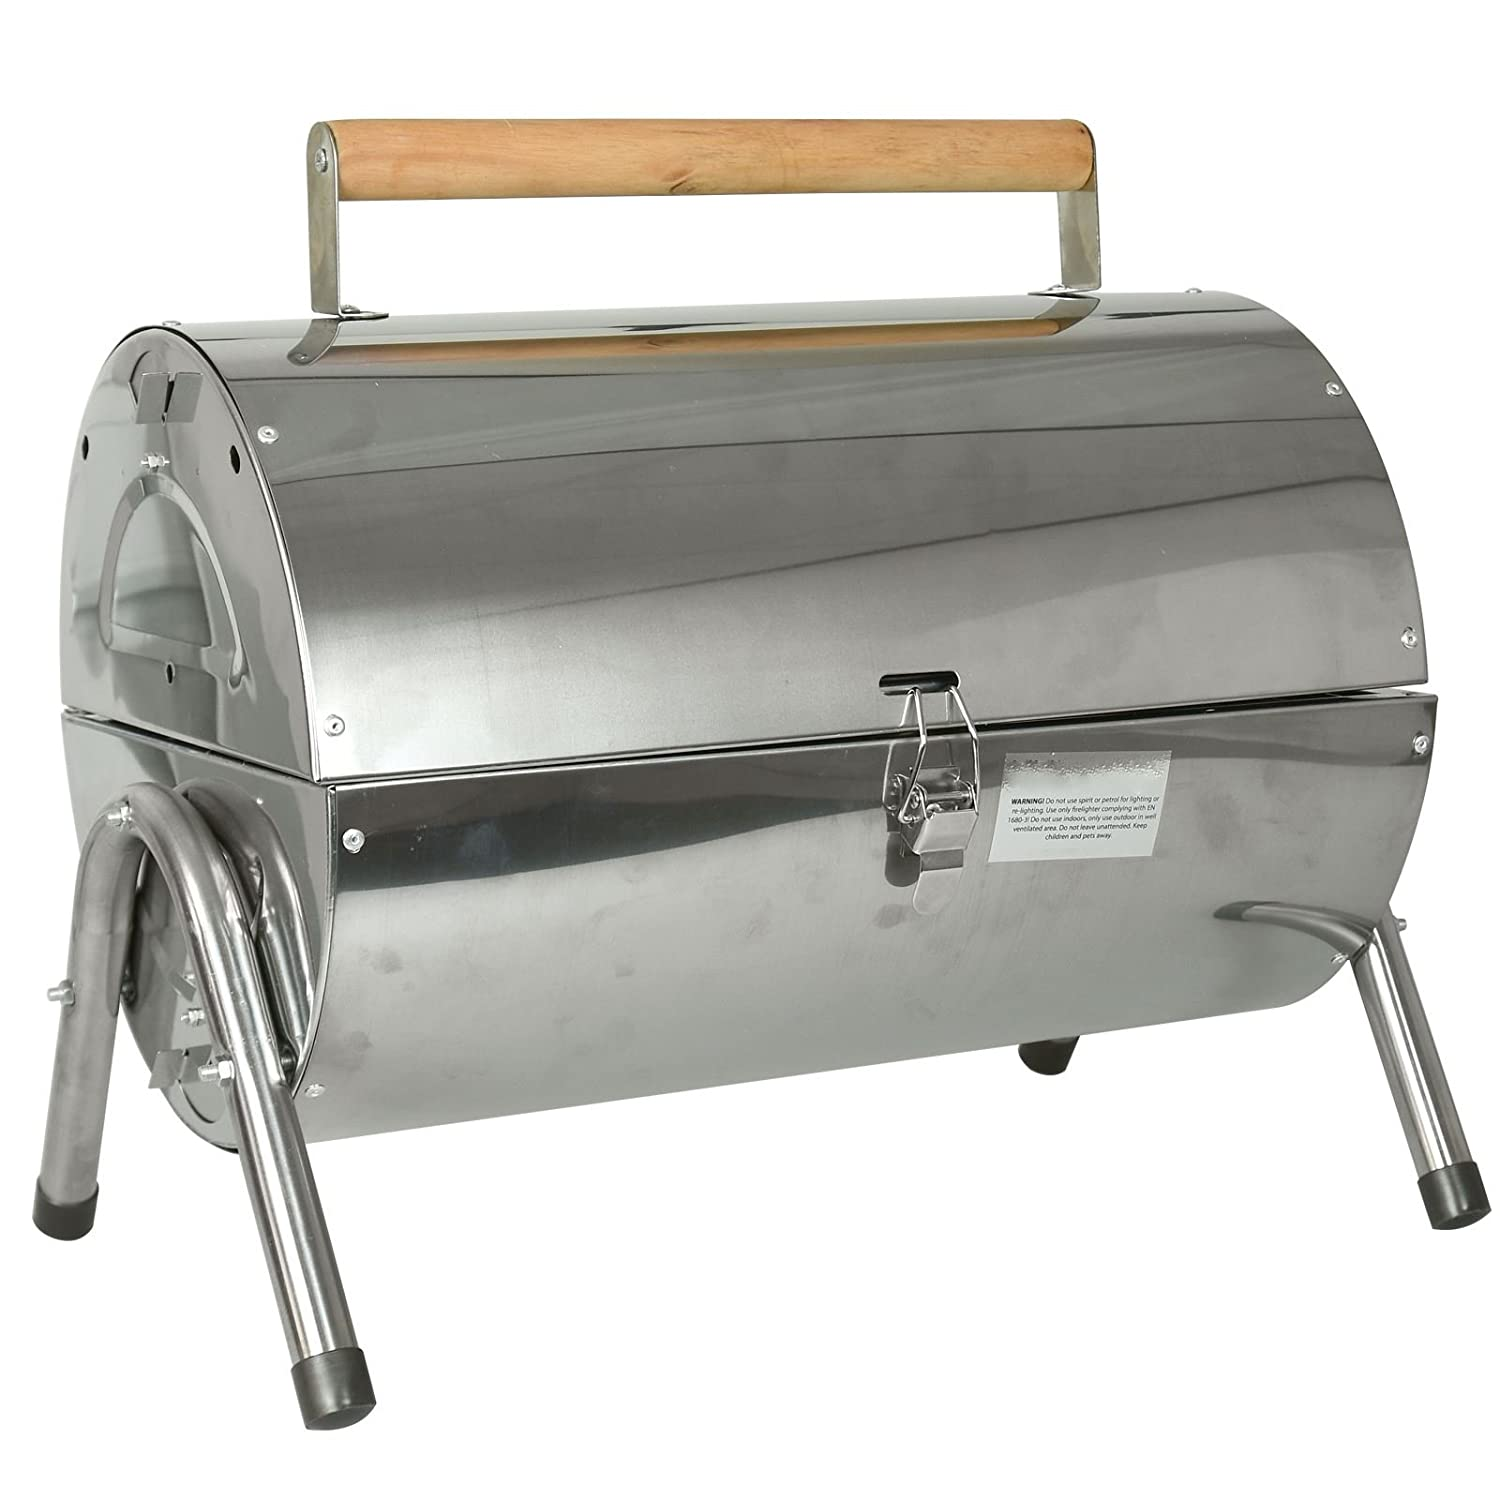 Outdoor Camping Table Top Picnic Portable Stainless Steel Barrel BBQ Charcoal Fire Barbecue Pit Table Top 2 Separate Grills With Side Vents And Clip Lock